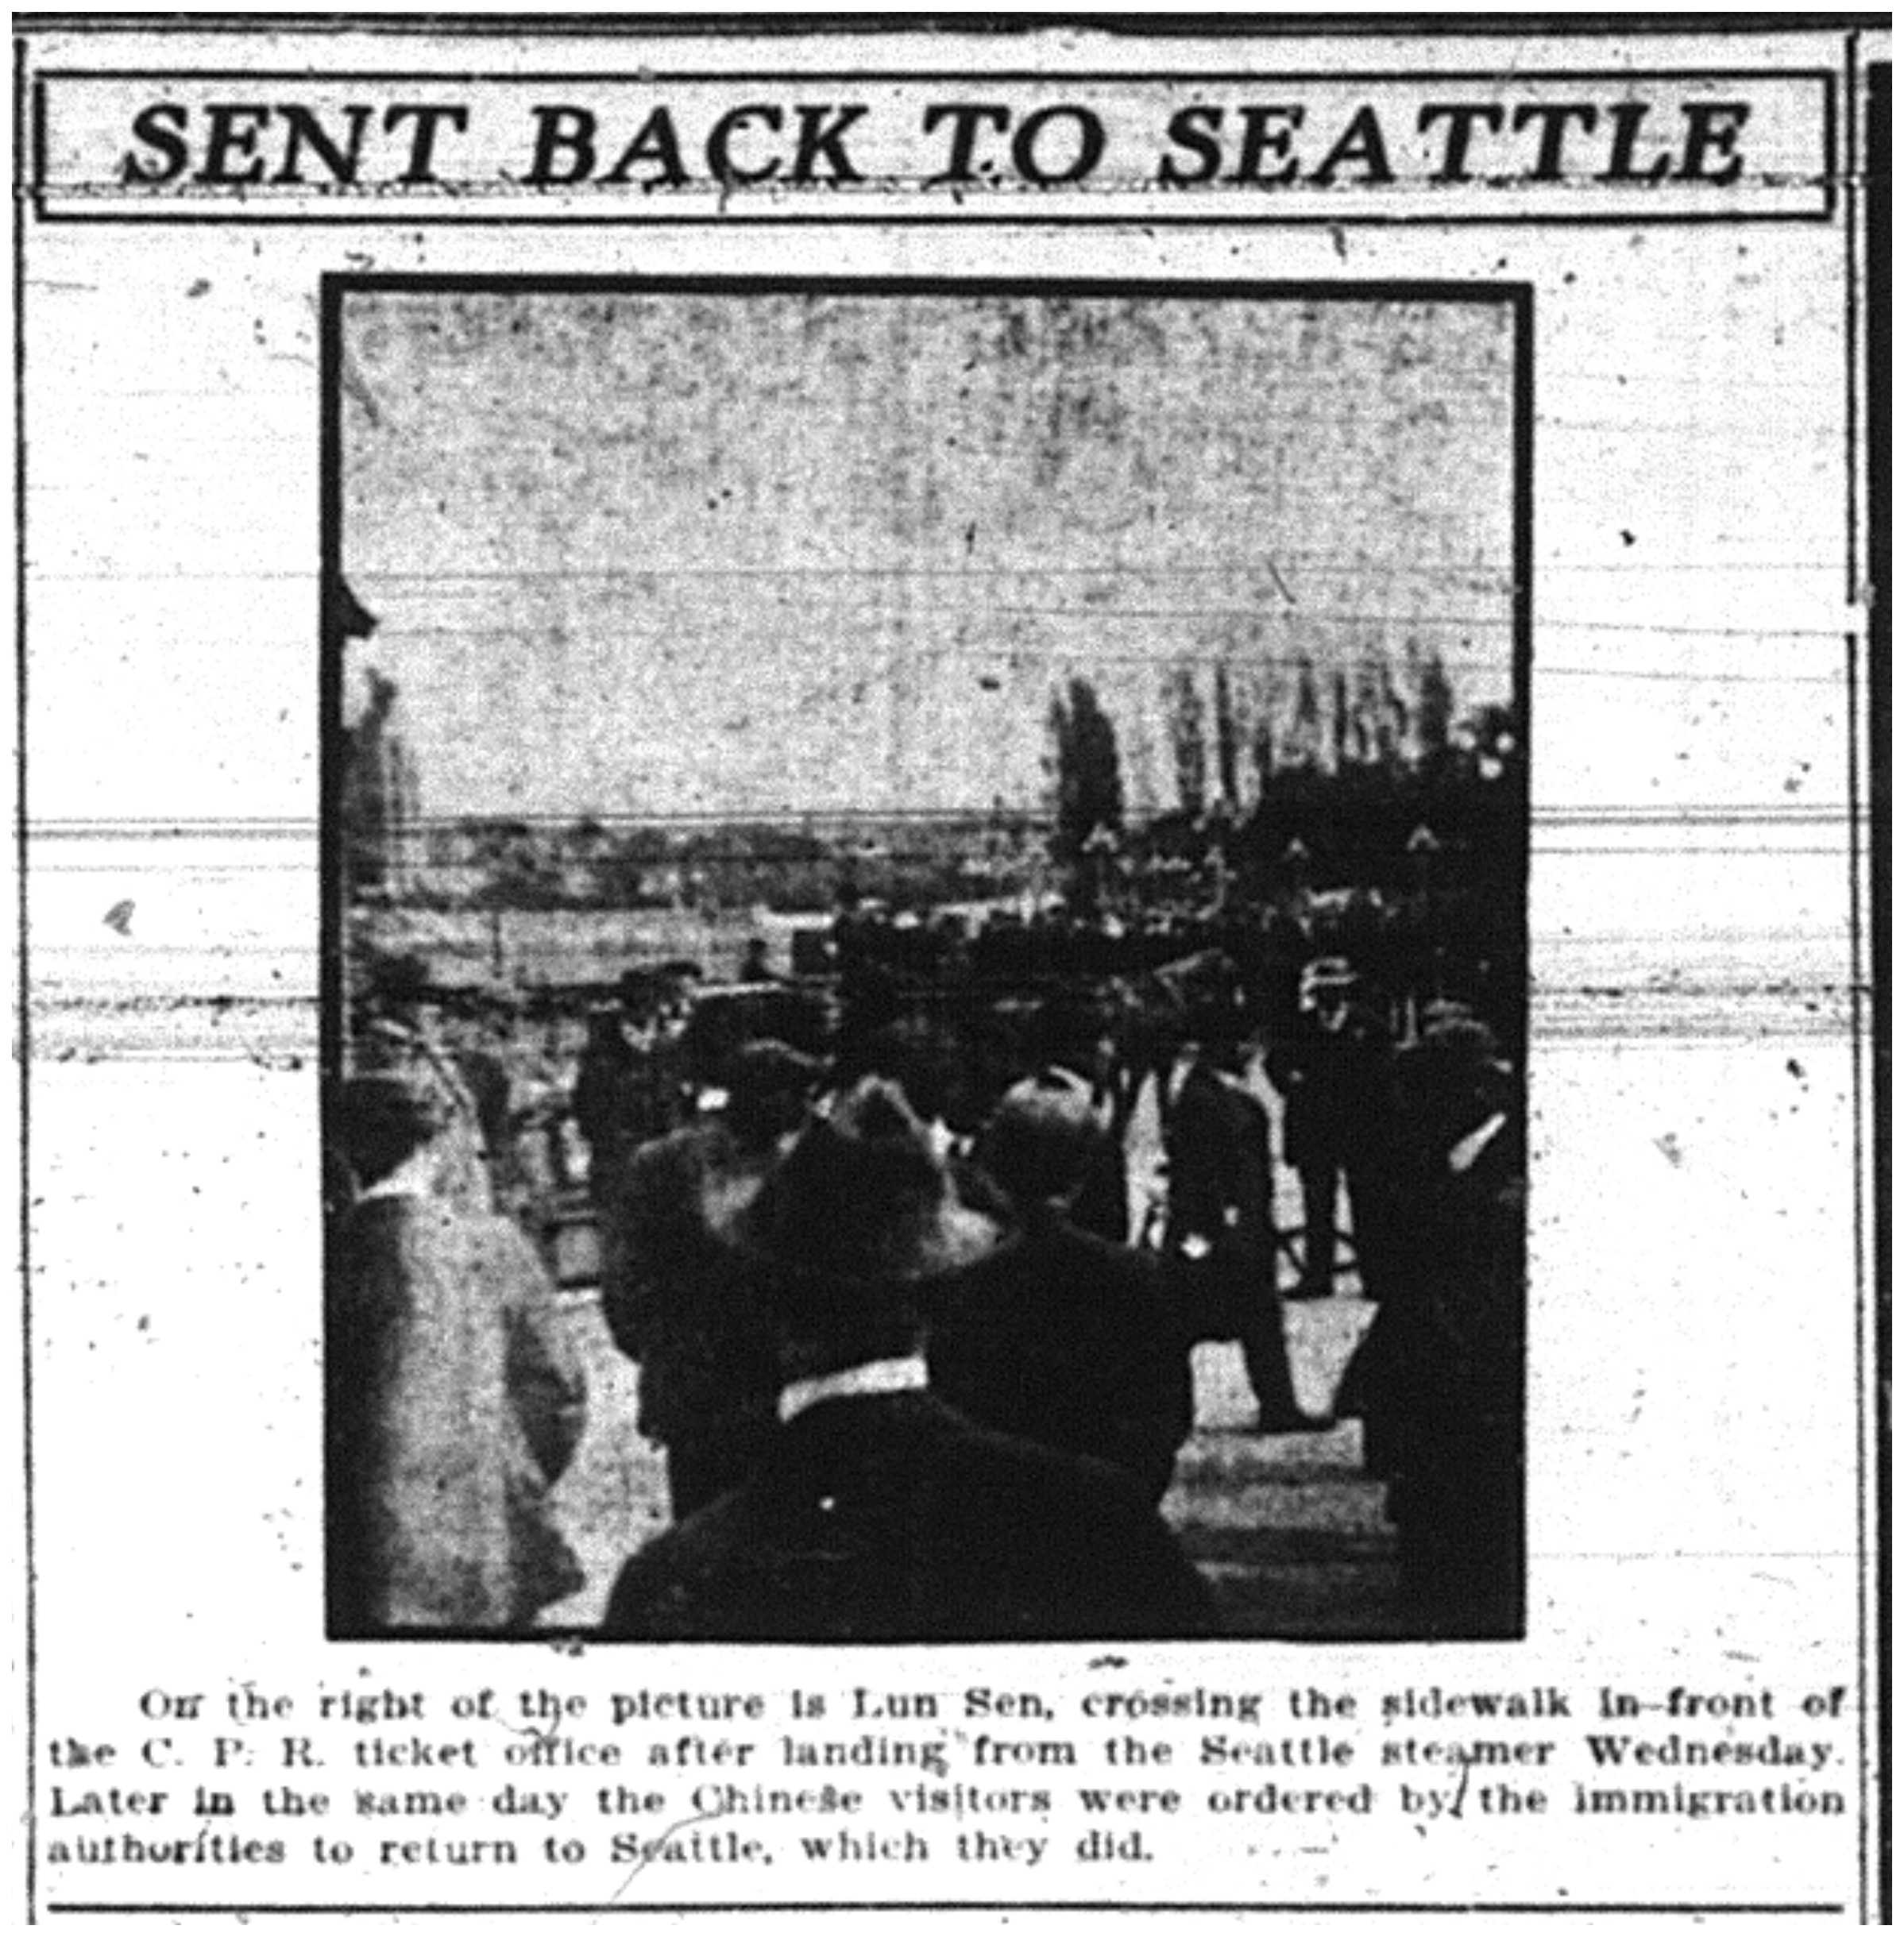 Chinese visitors sent back to Seattle